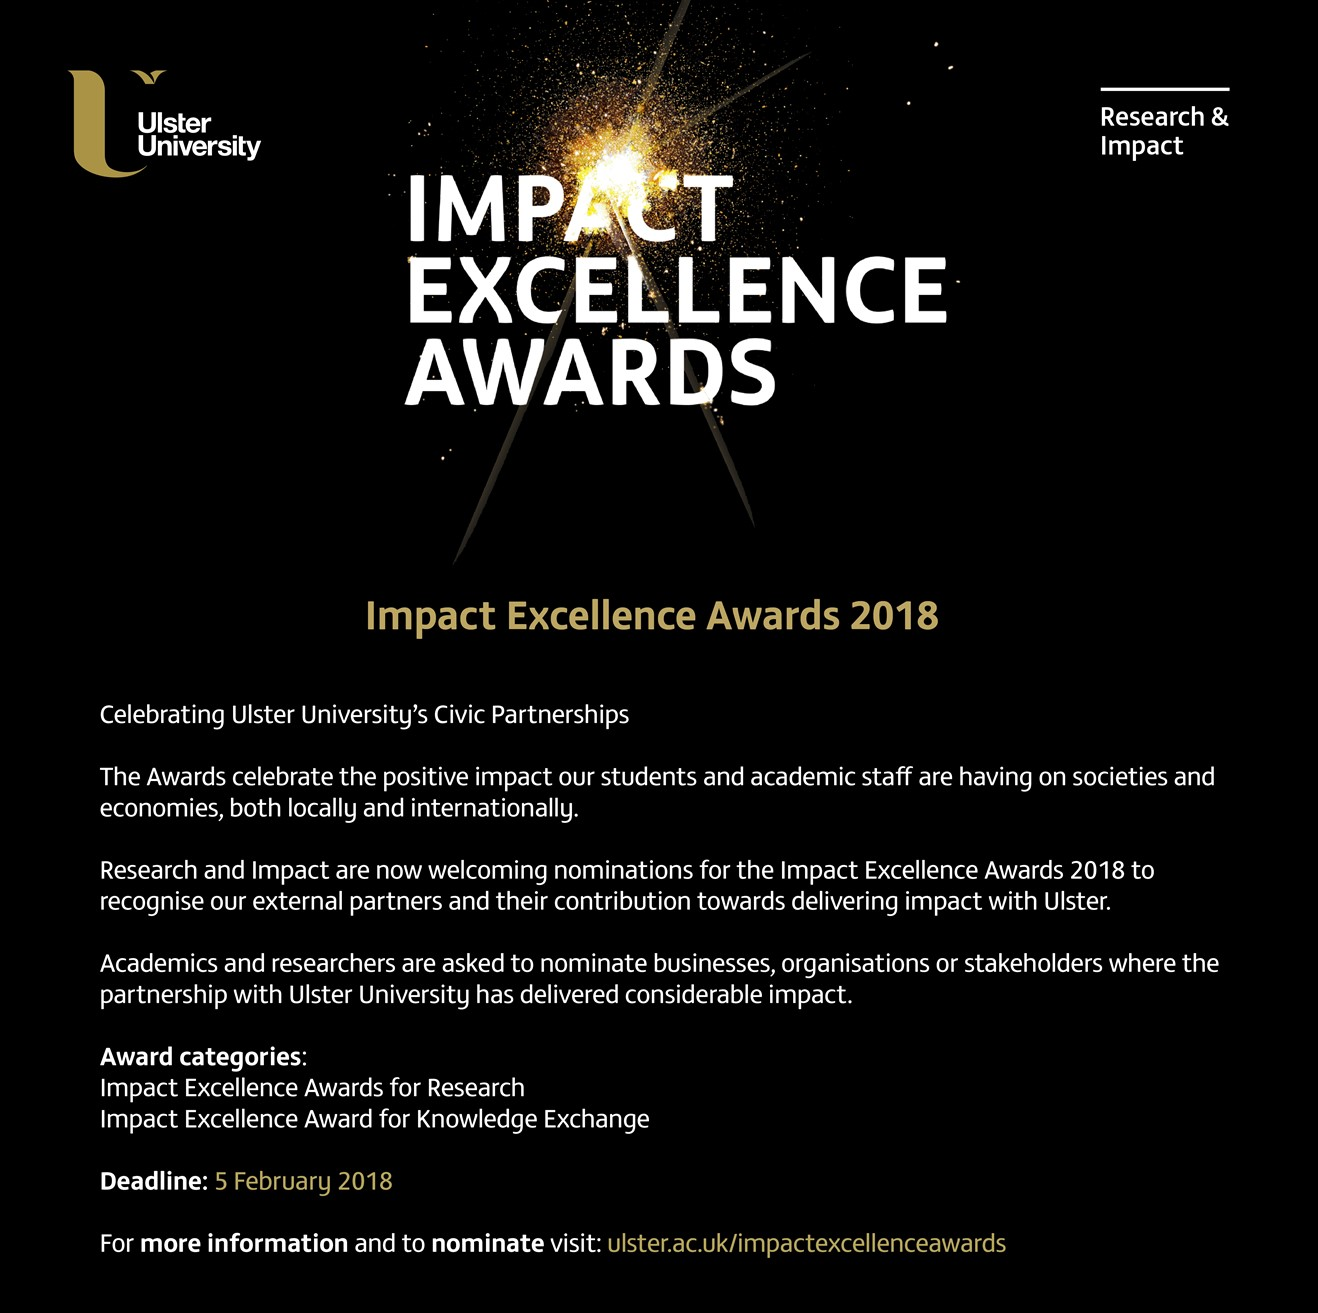 impact-excellence-awards